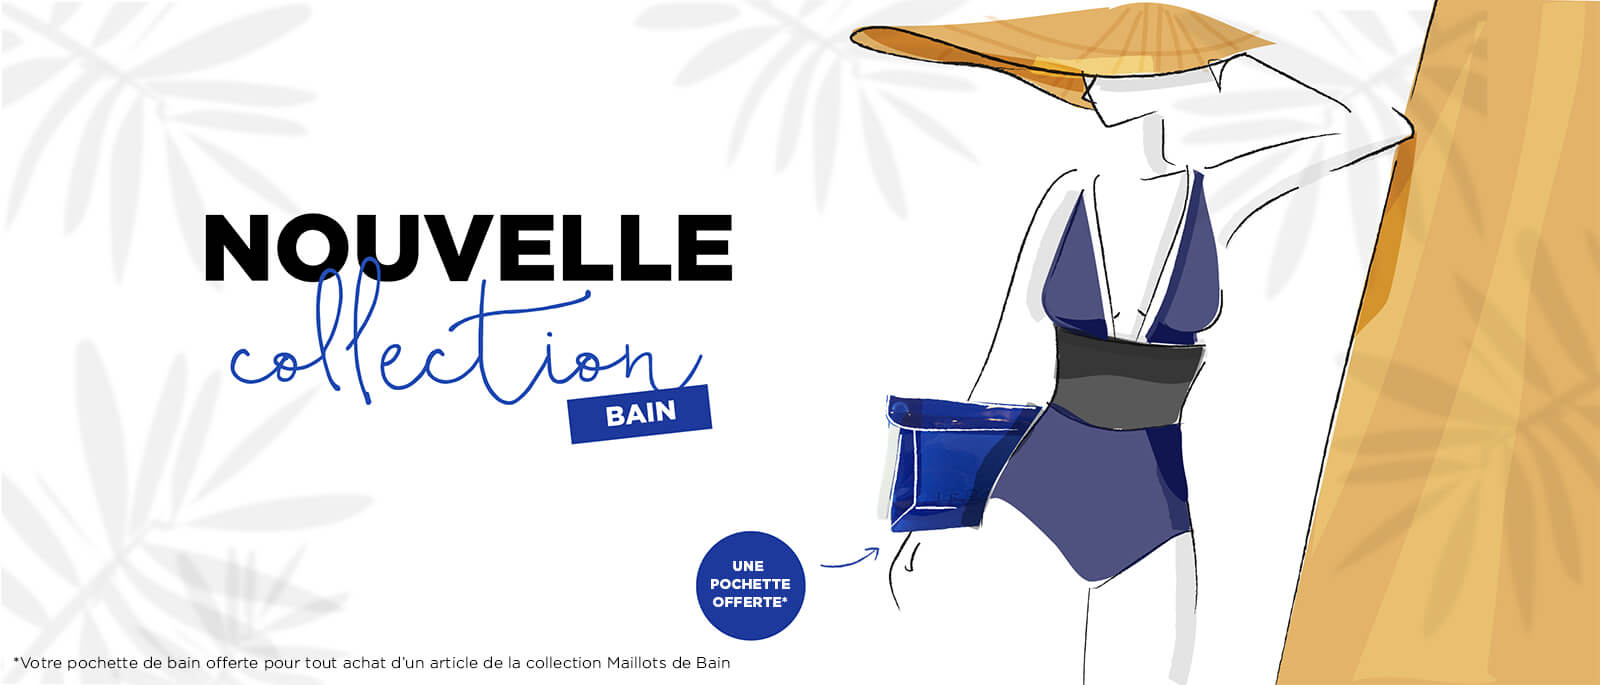 Nouvelle collection bain - Le Bourget